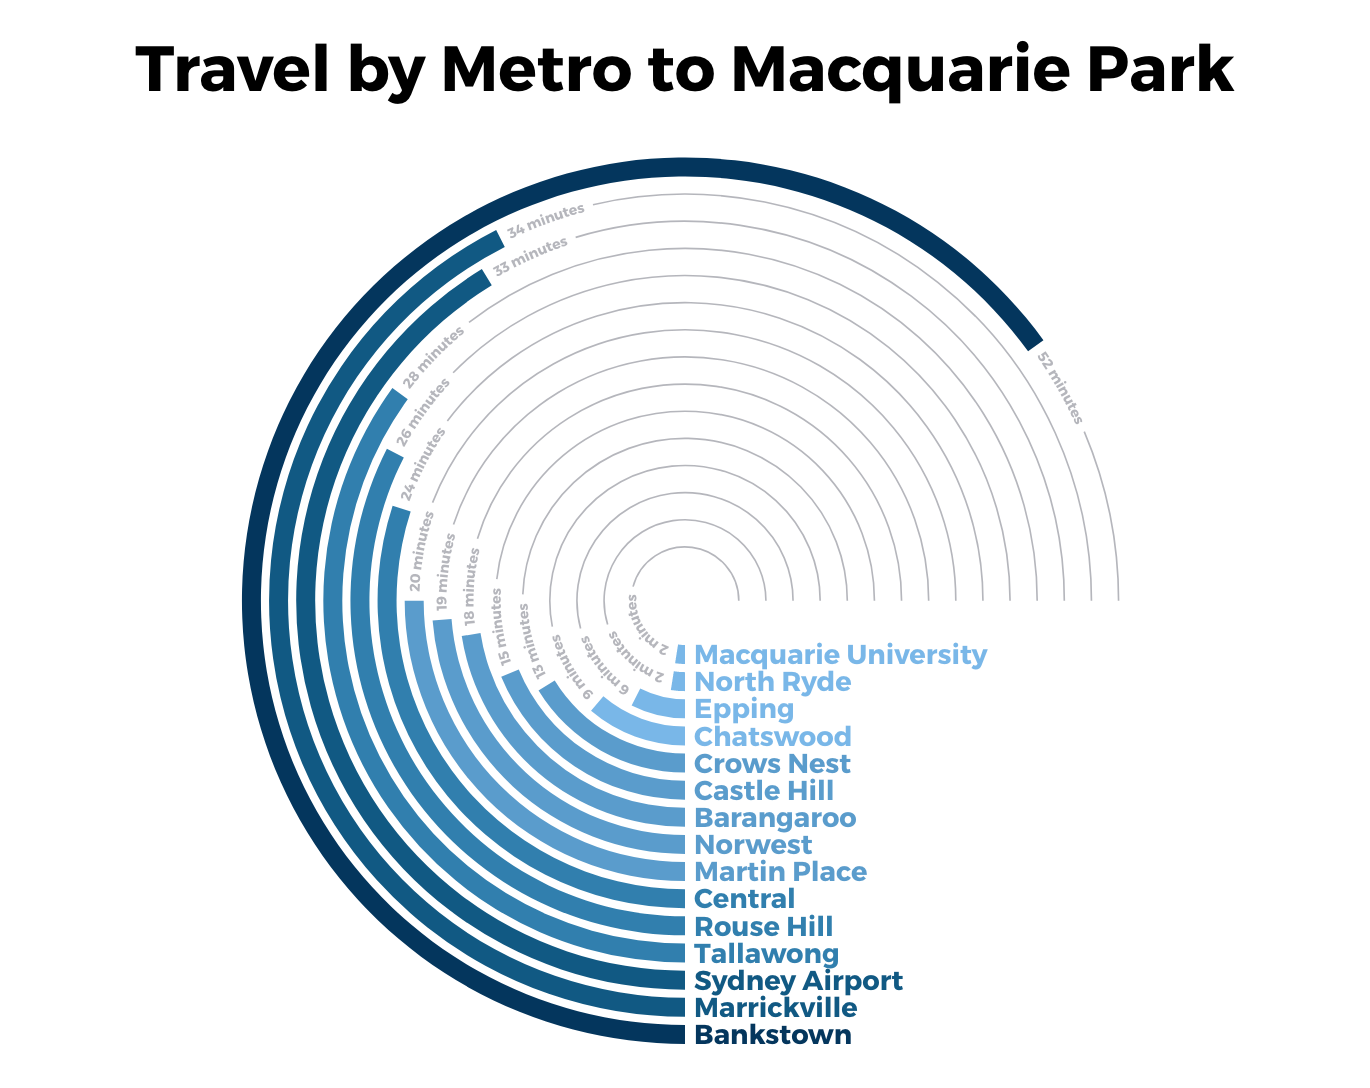 (Indicative travel times in minutes, post Metro Stage 2 opening in 2024)